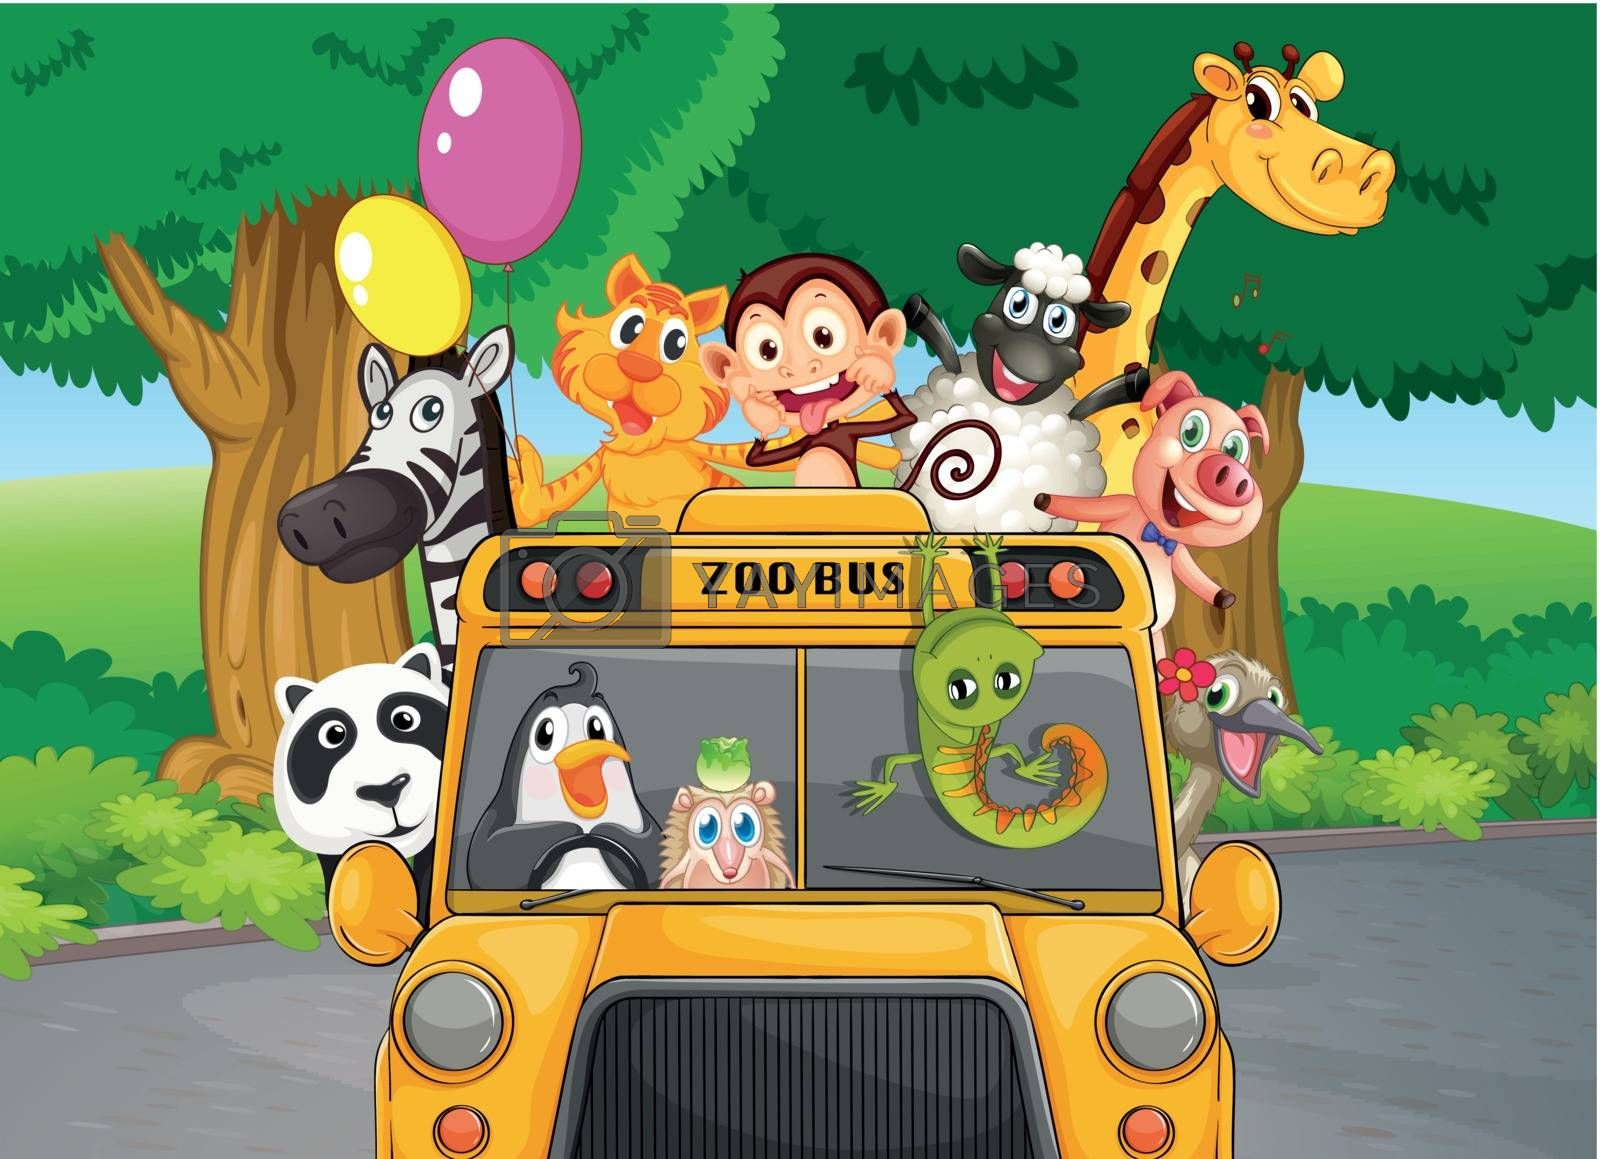 Illustration of a zoo bus with animals